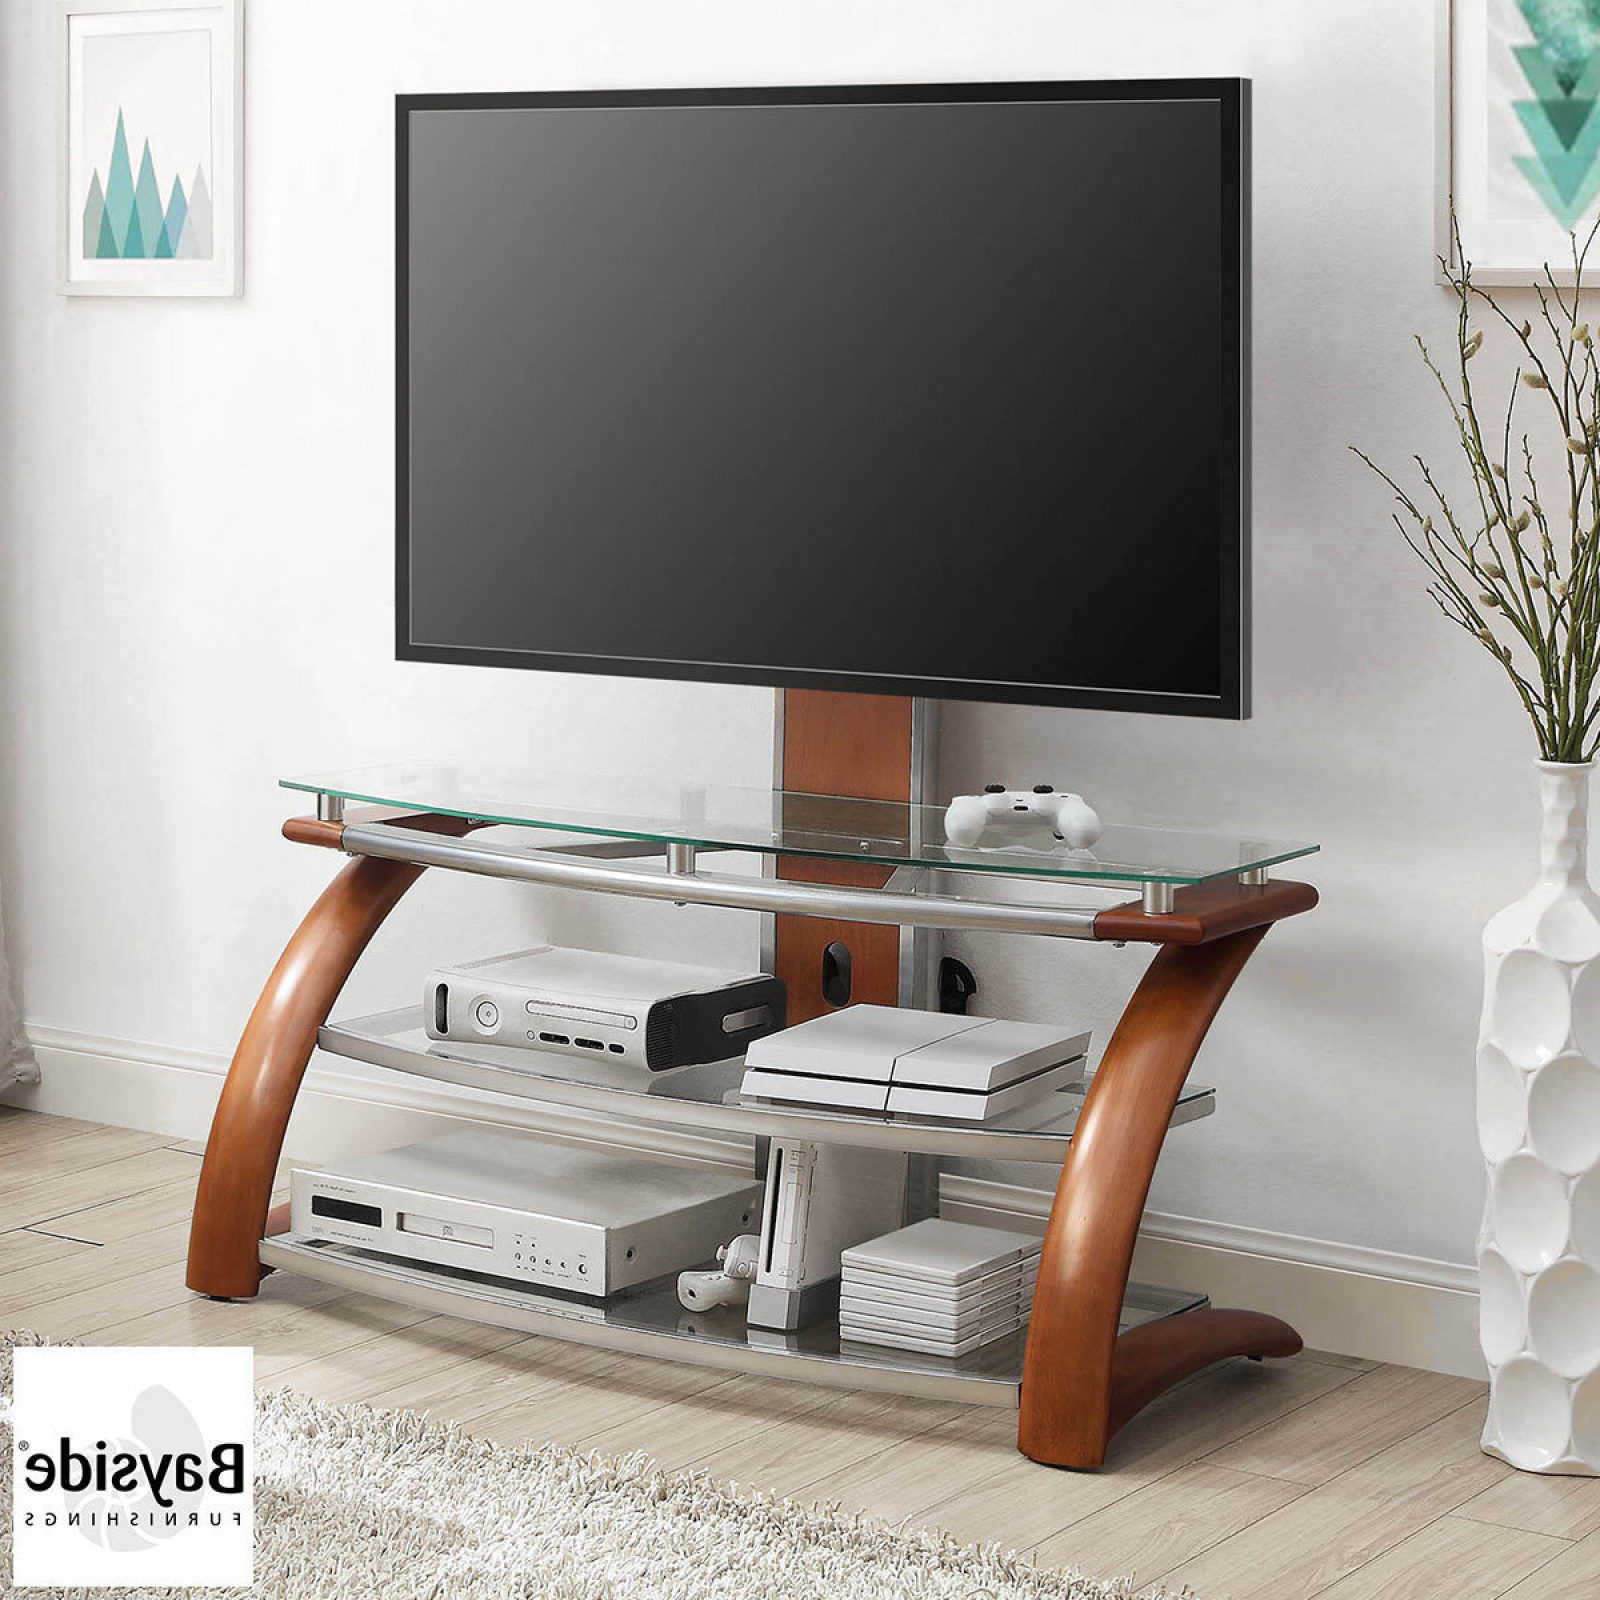 Floating Glass Tv Stands Regarding Popular Kross 3 Shelf Glass Tv Stand Floating With Mount 2 3 Shelf – Up To (View 13 of 20)